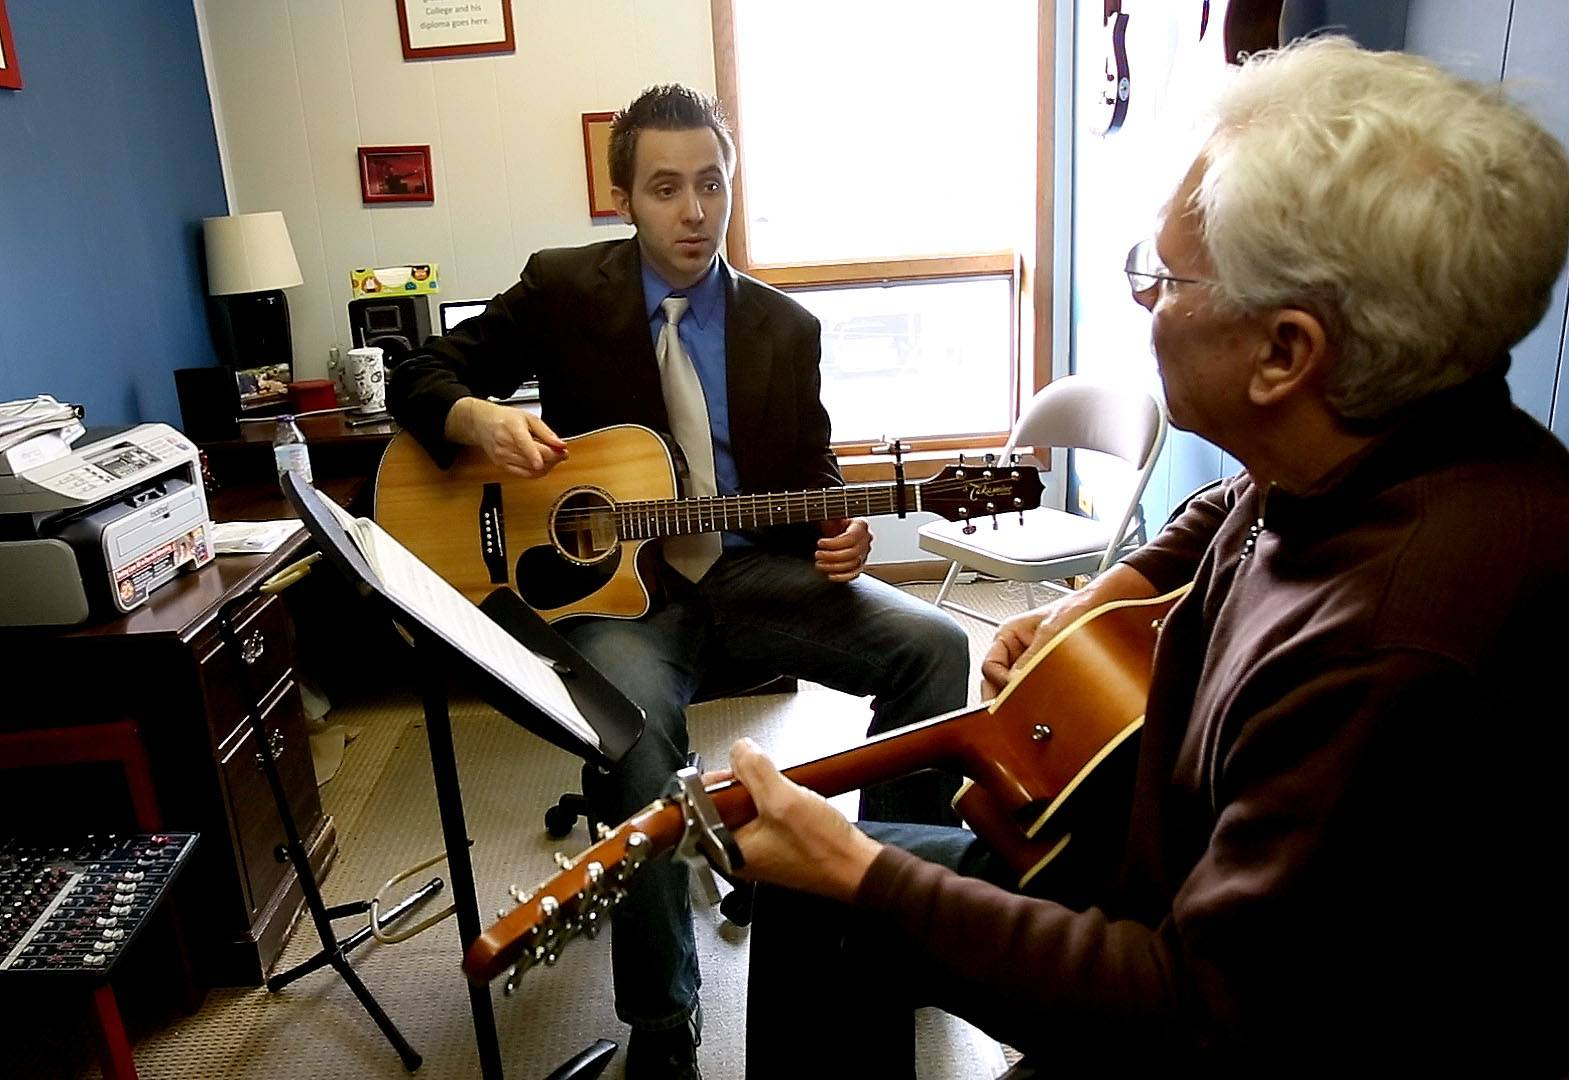 Jerry Evans, left, gives an acoustic guitar lesson to Tom Camden of Wheaton. Evans recently expanded his downtown Wheaton music school to include more space and instructors who can teach guitar, drums, bass, singing, string and wood instruments to children and adults.